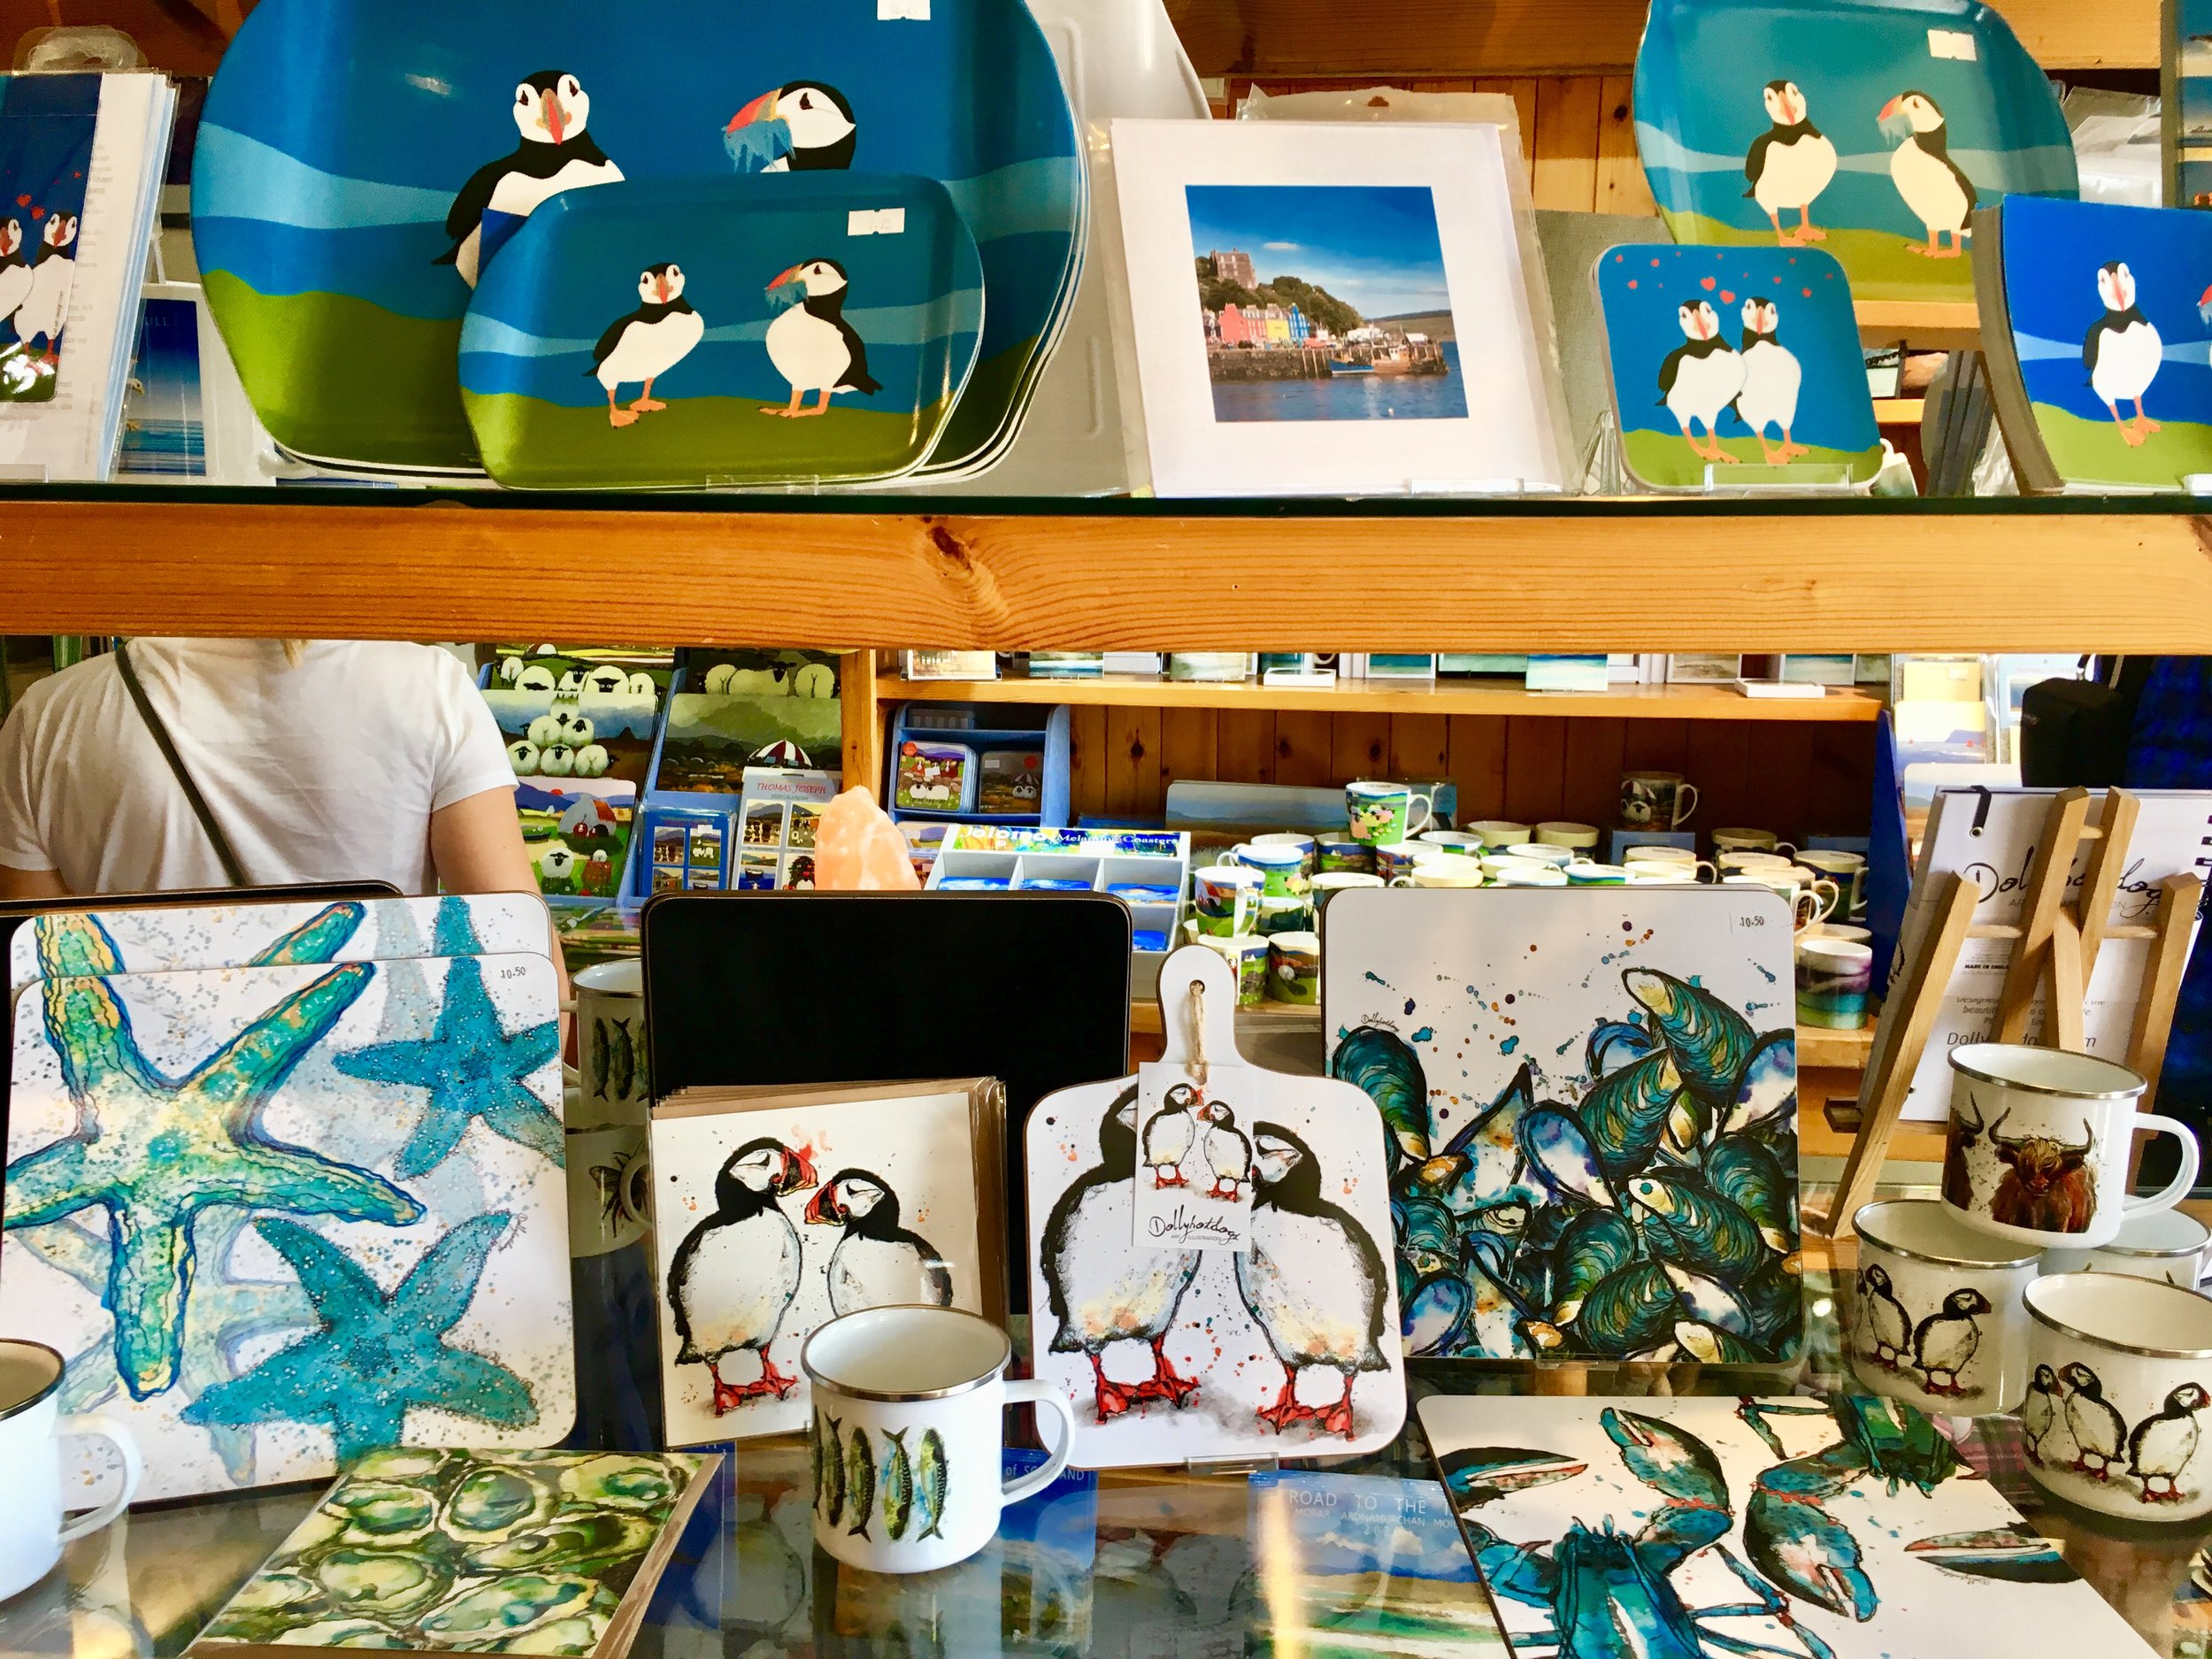 Sea and wildlife imagery is a great choice for souvenir gift giving.